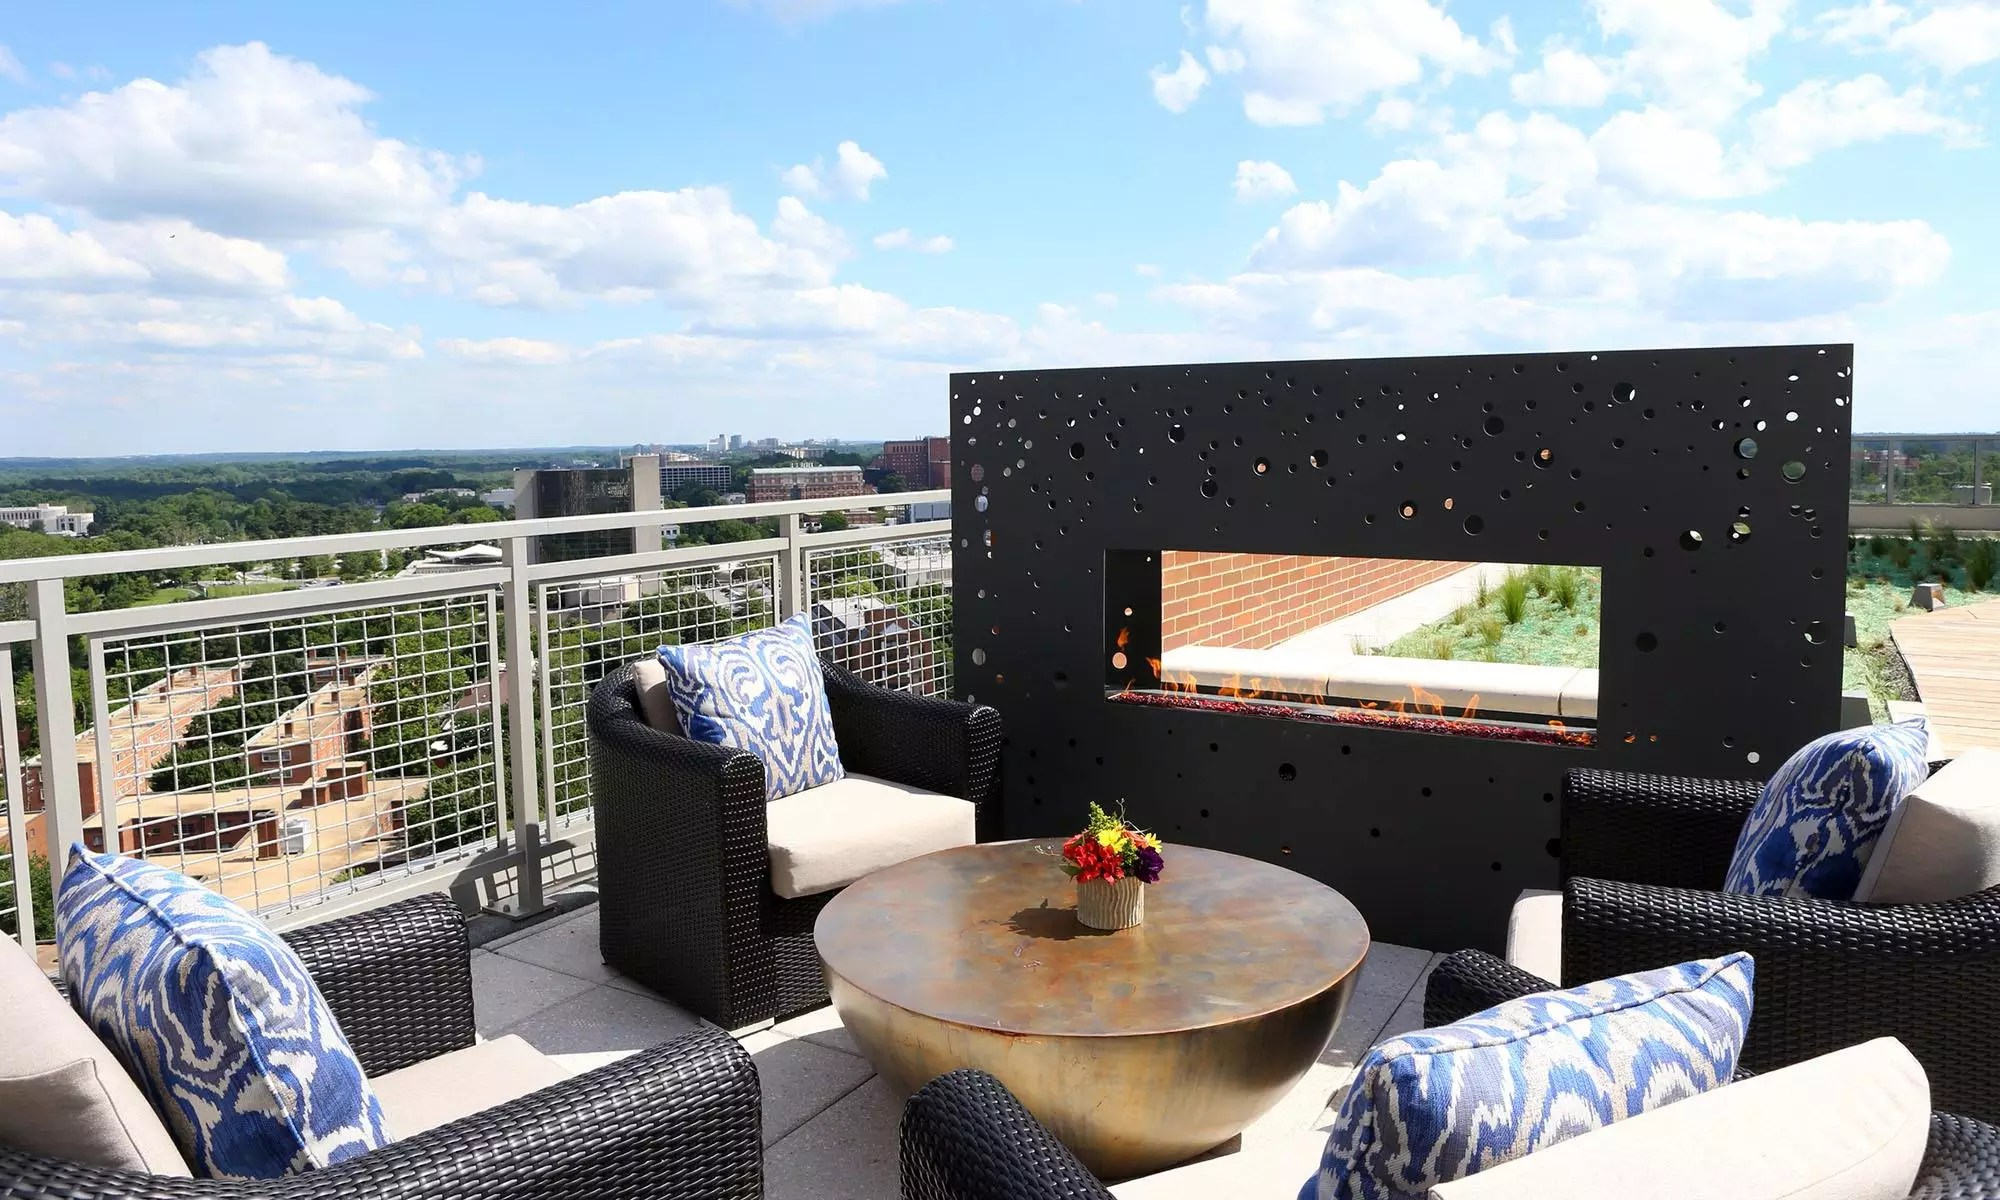 Downtown Bethesda, MD Apartments for Rent